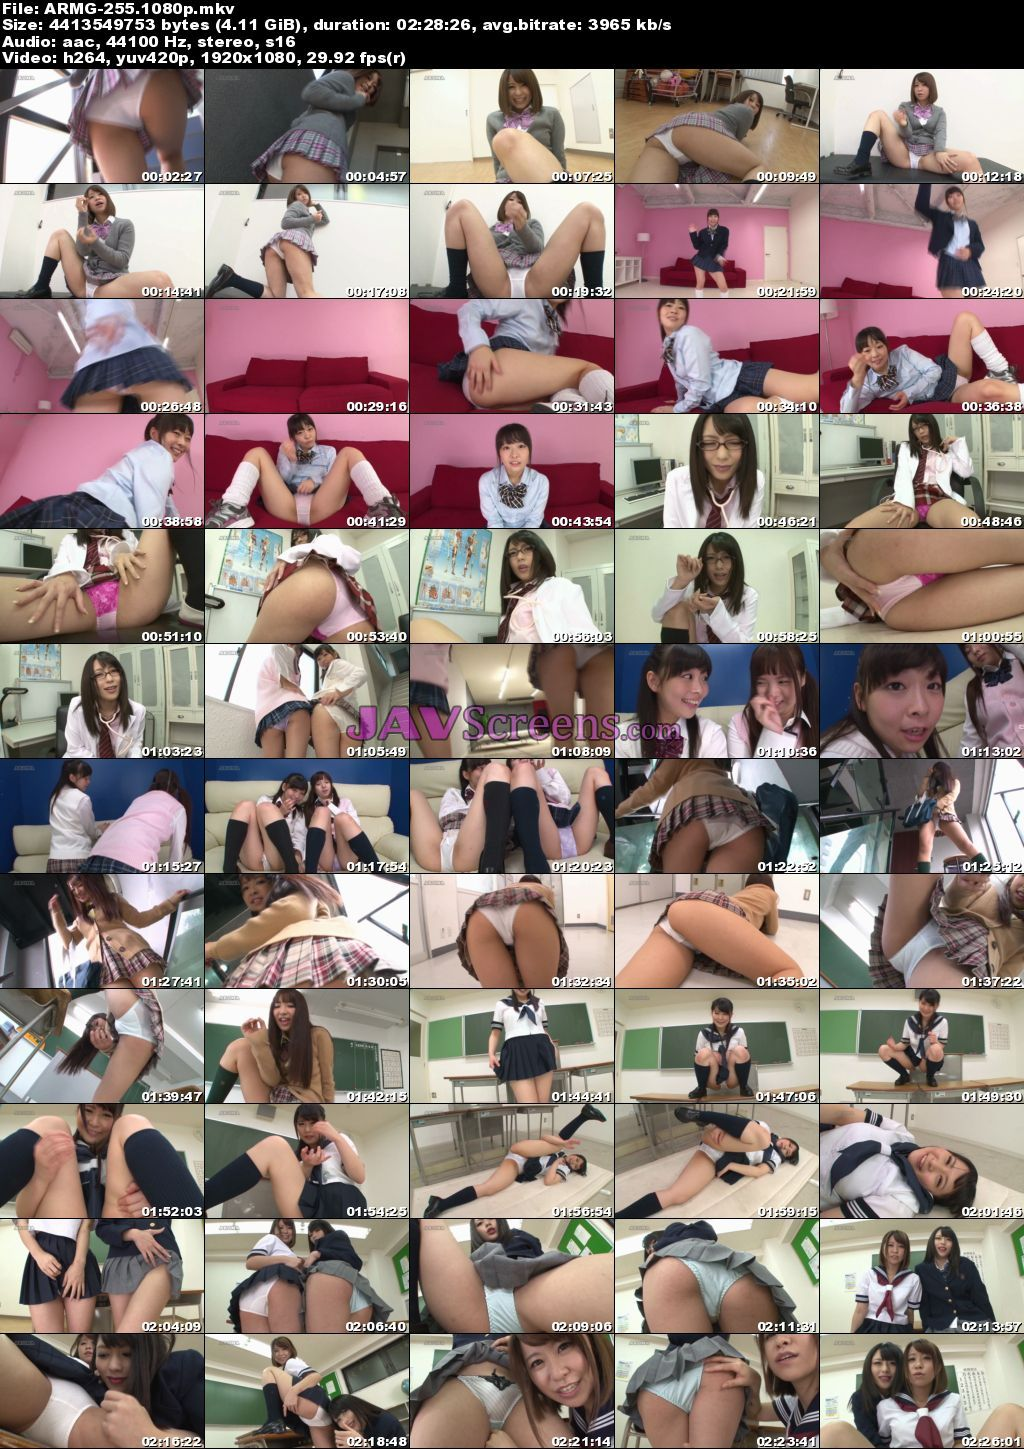 ARMG-255.jpg - JAV Screenshot